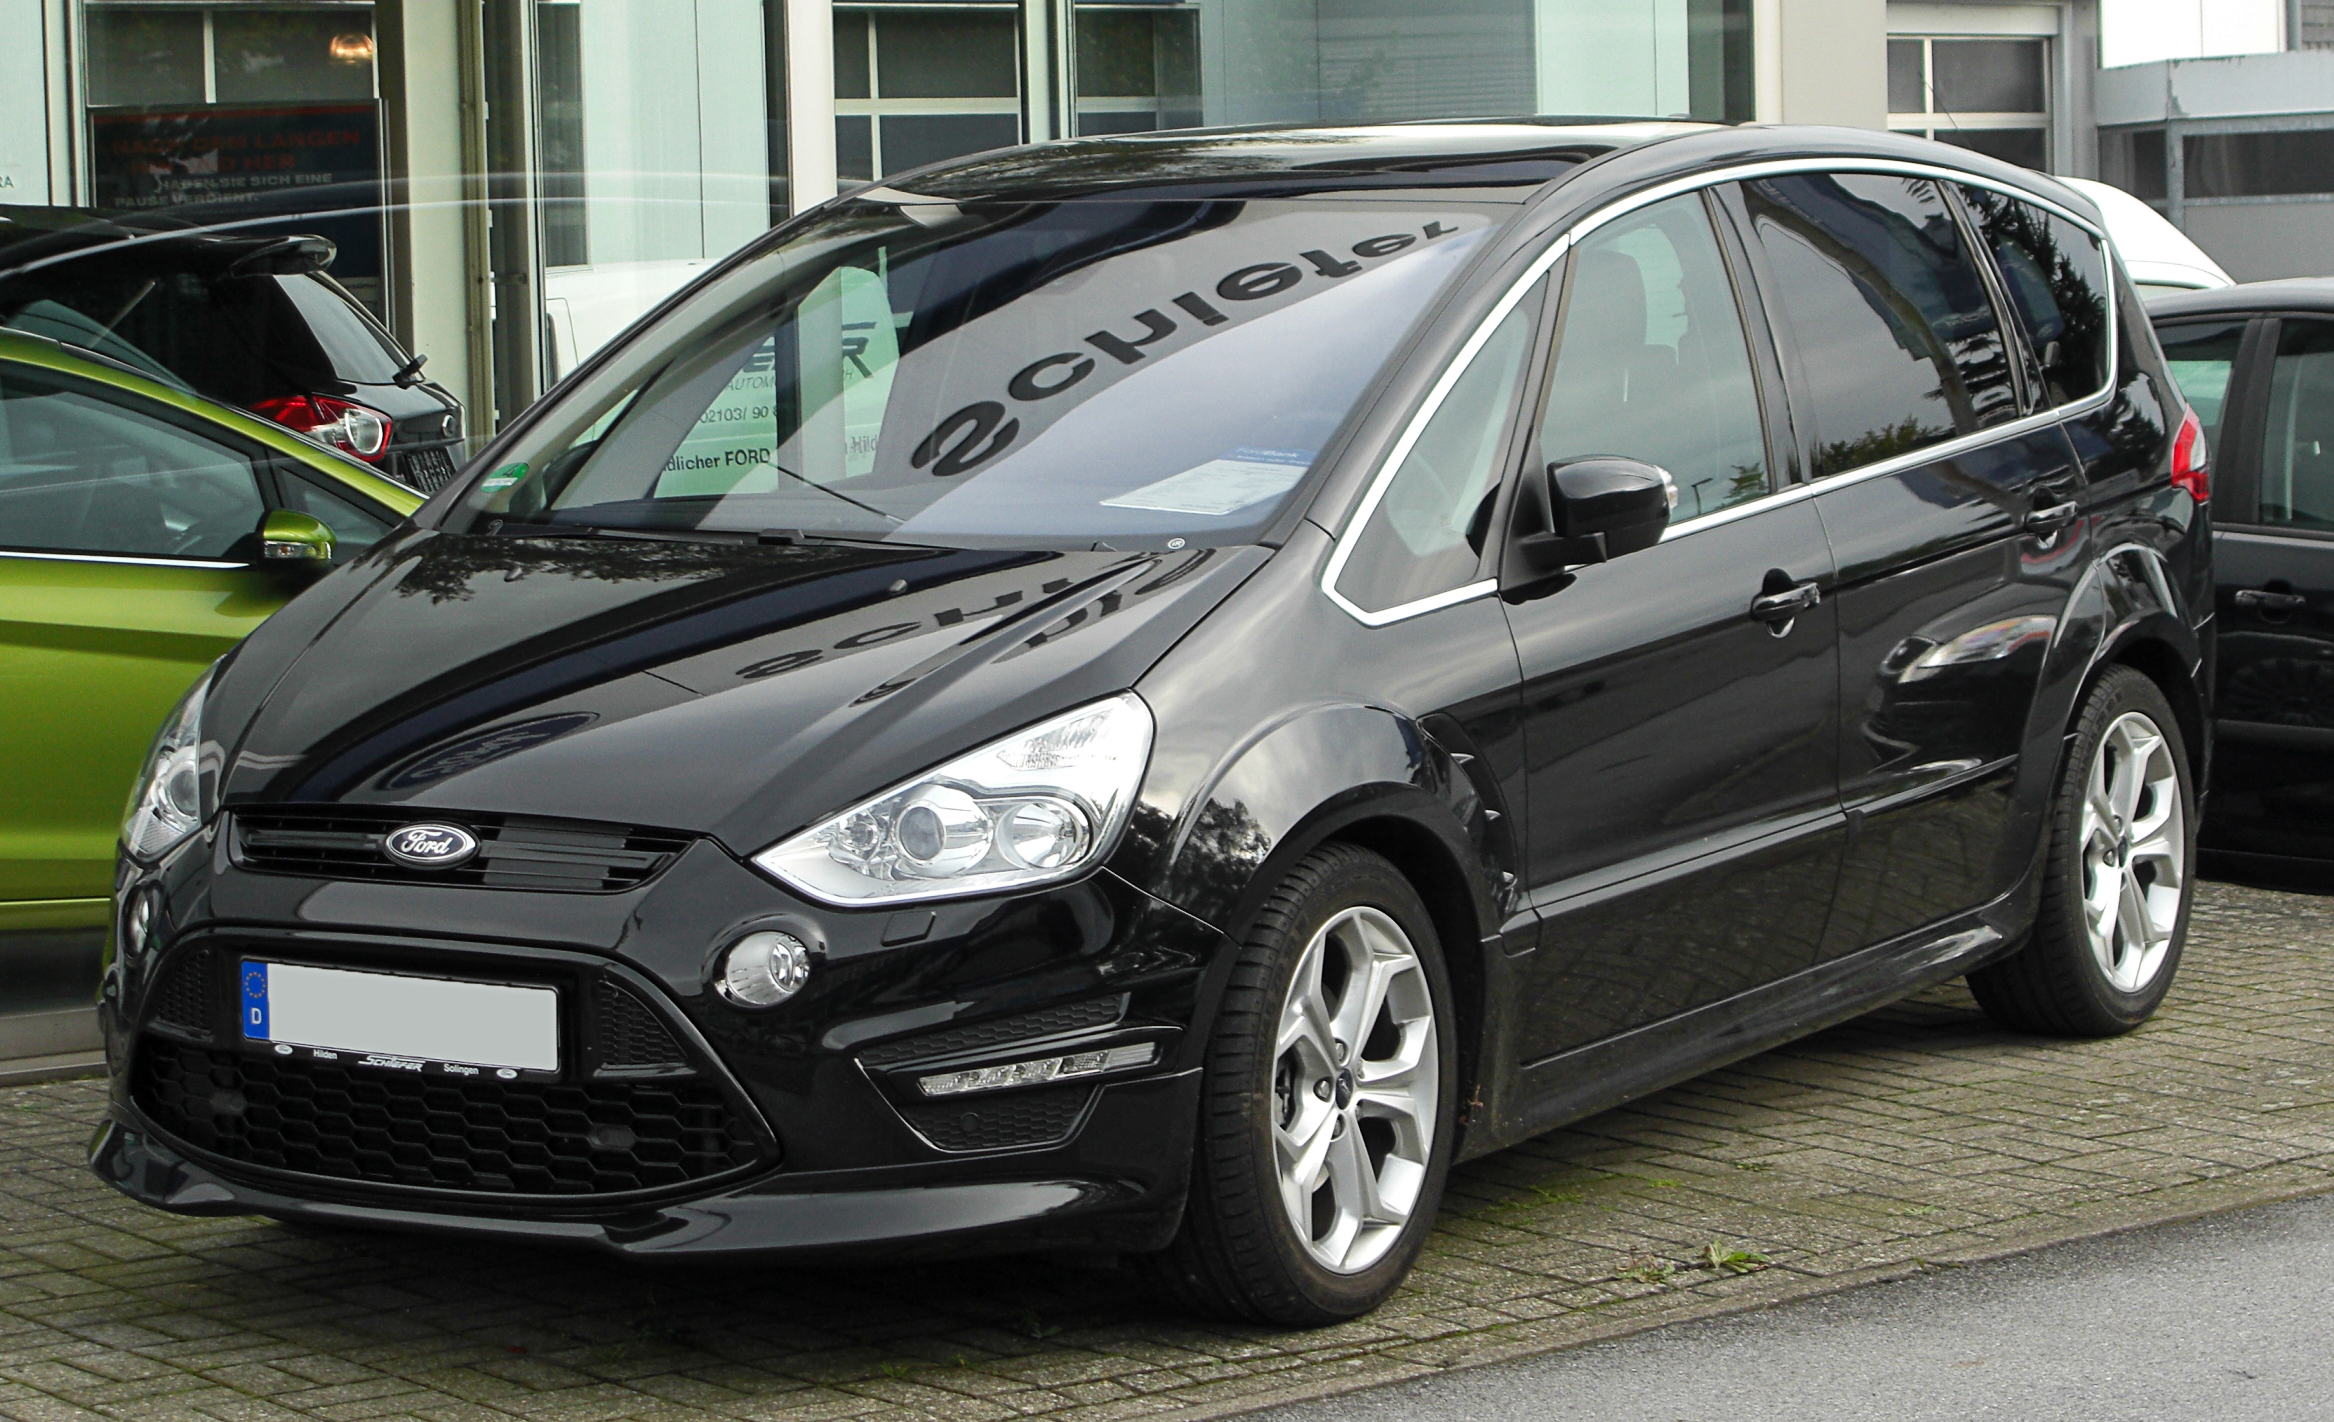 Ford S-Max 2.2 2007 photo - 4